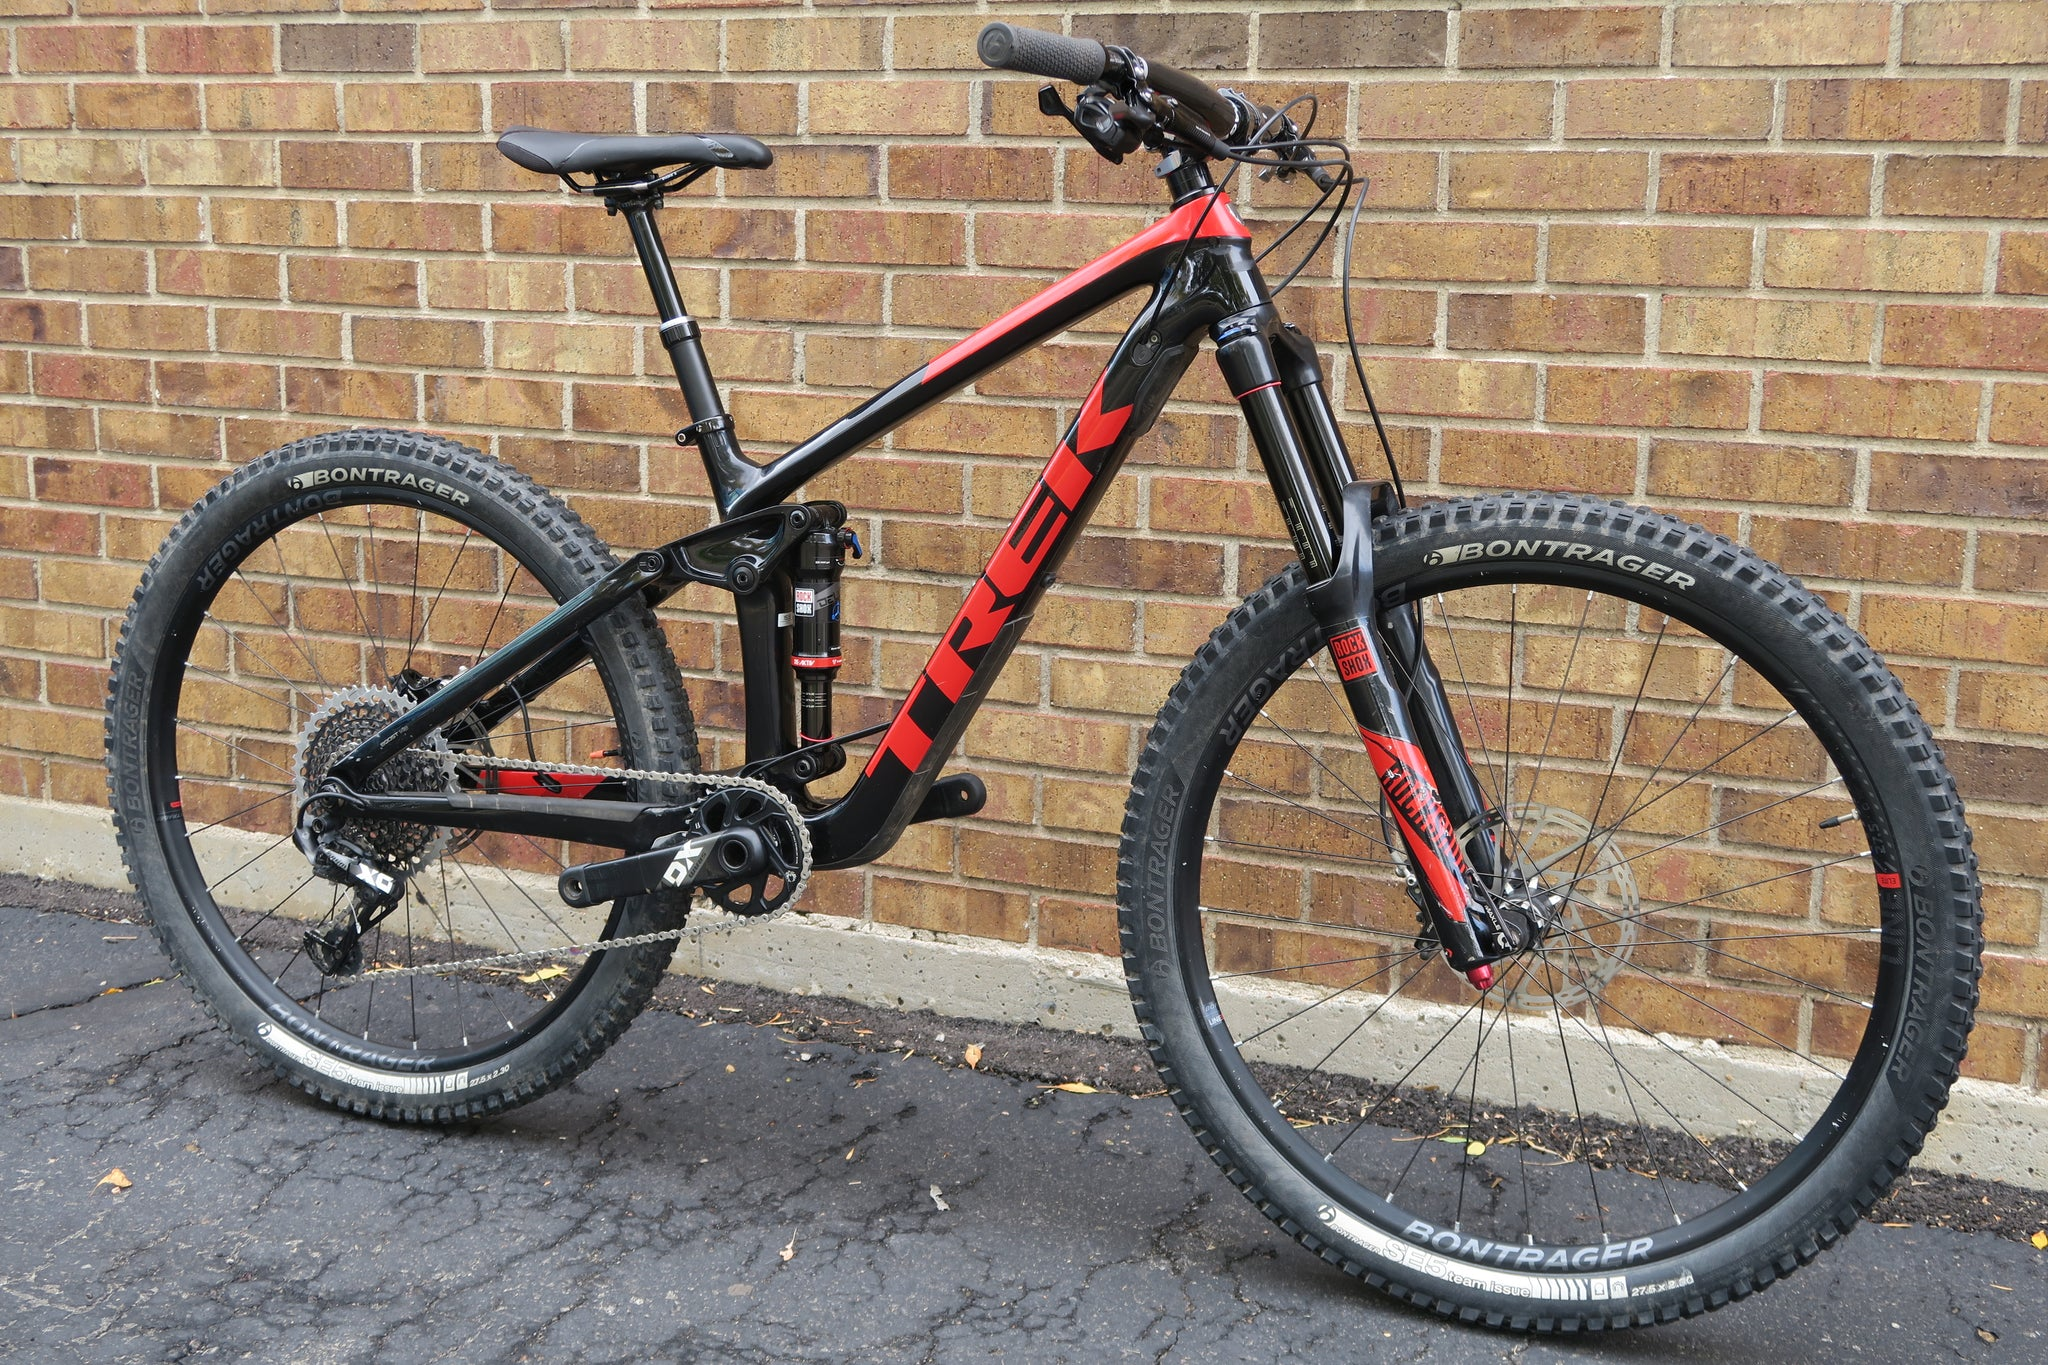 TREK REMEDY 9.9 RACE SHOP LIMITED CARBON 15.5 S